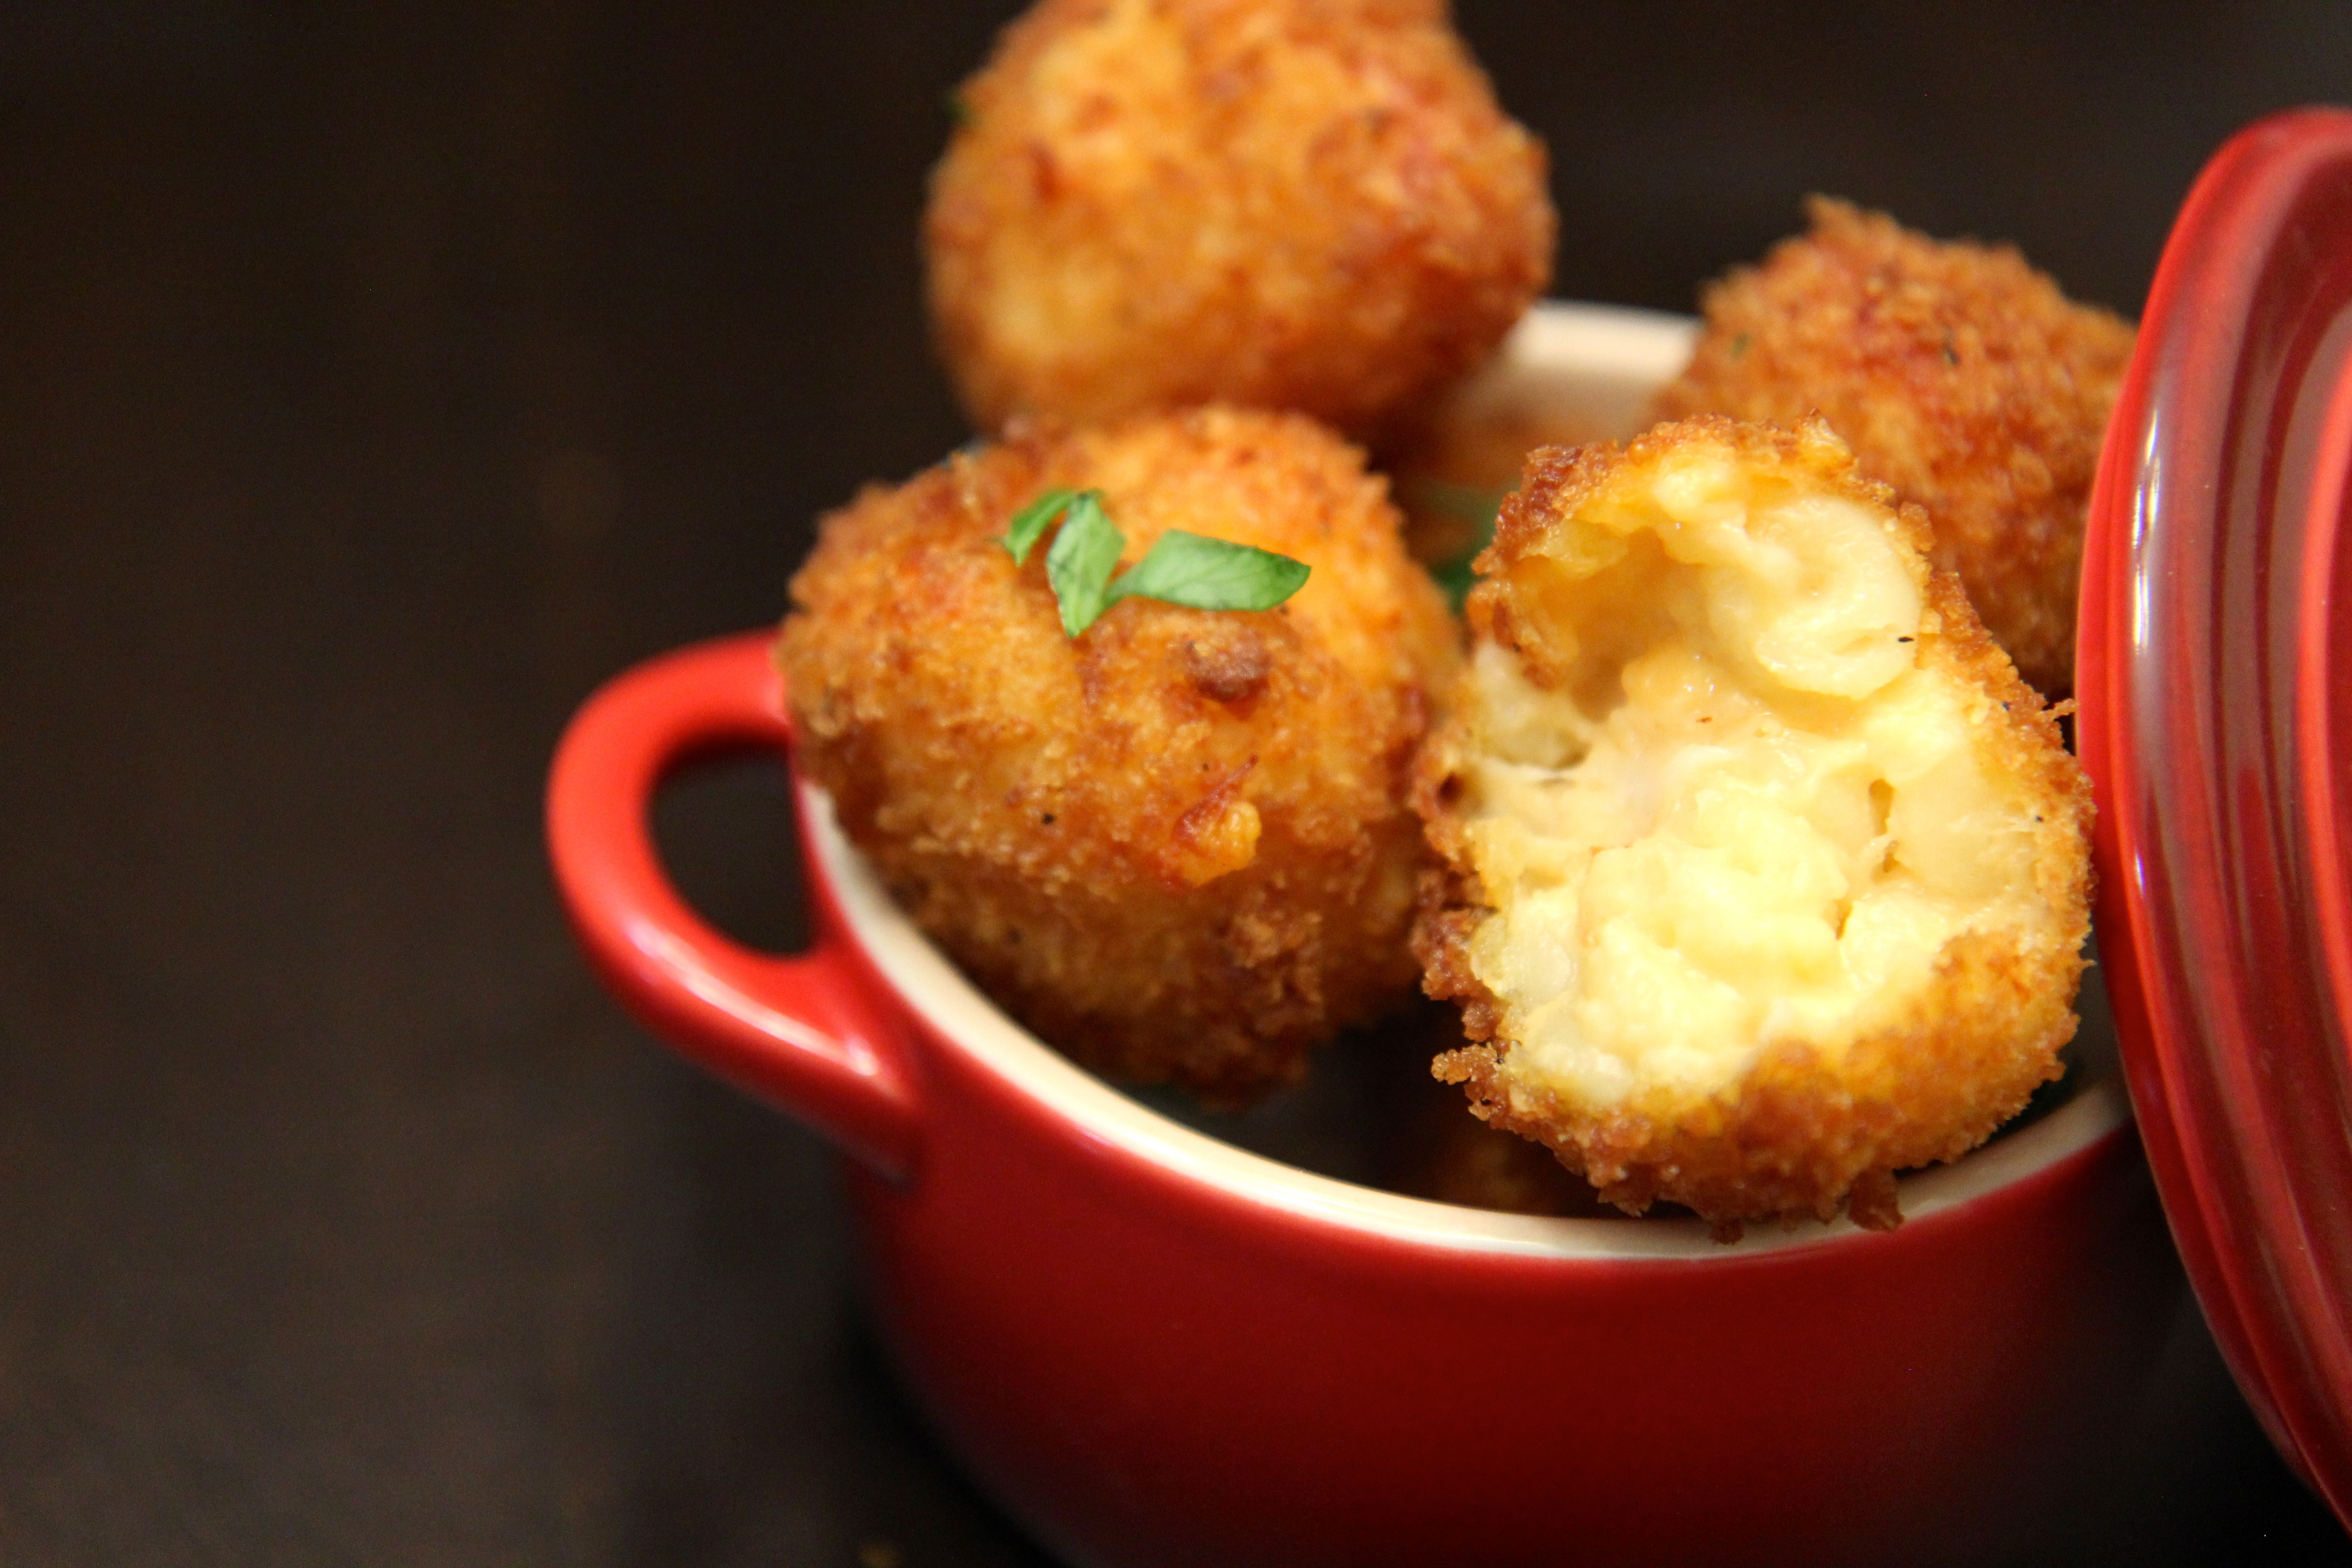 Crispy fried mac and cheese balls.